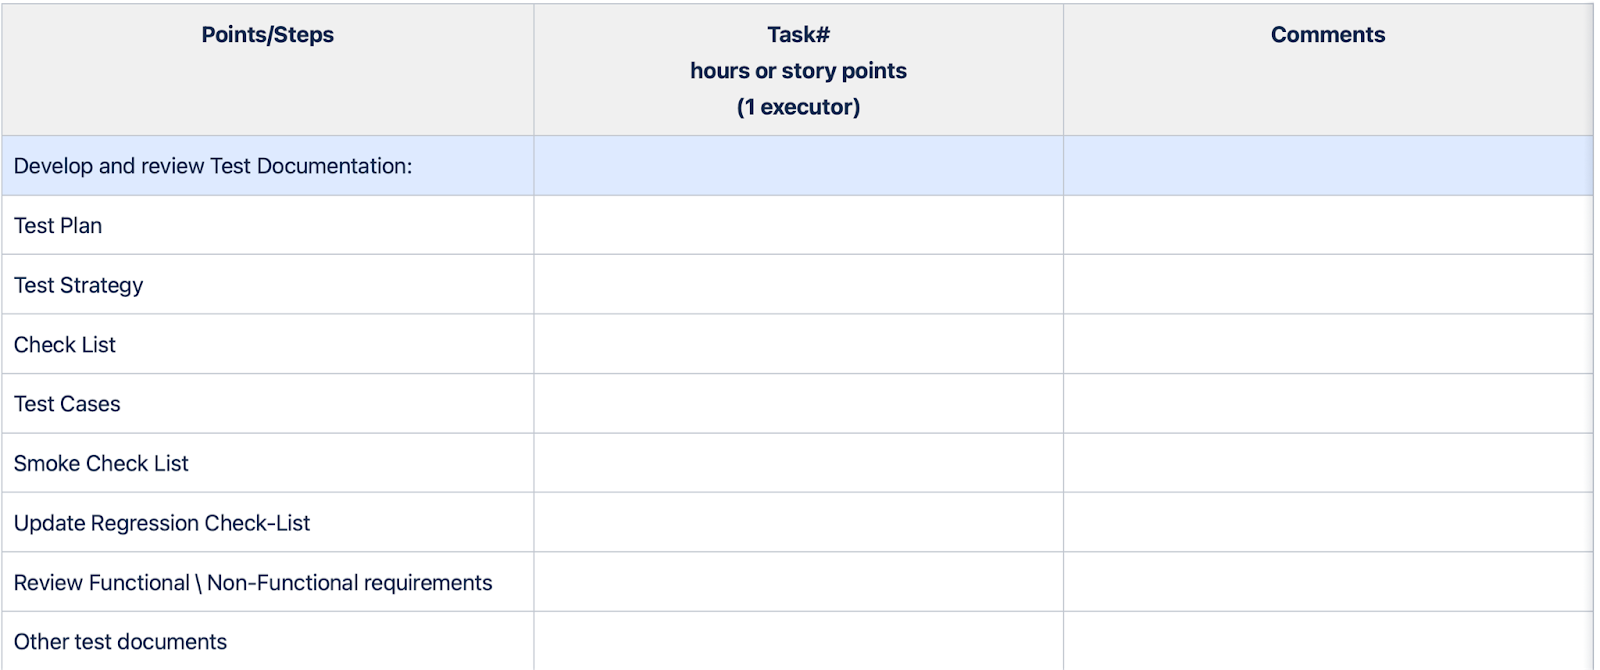 Test Documentation Estimation. Part 1 out of 3 of our QA Estimation Table